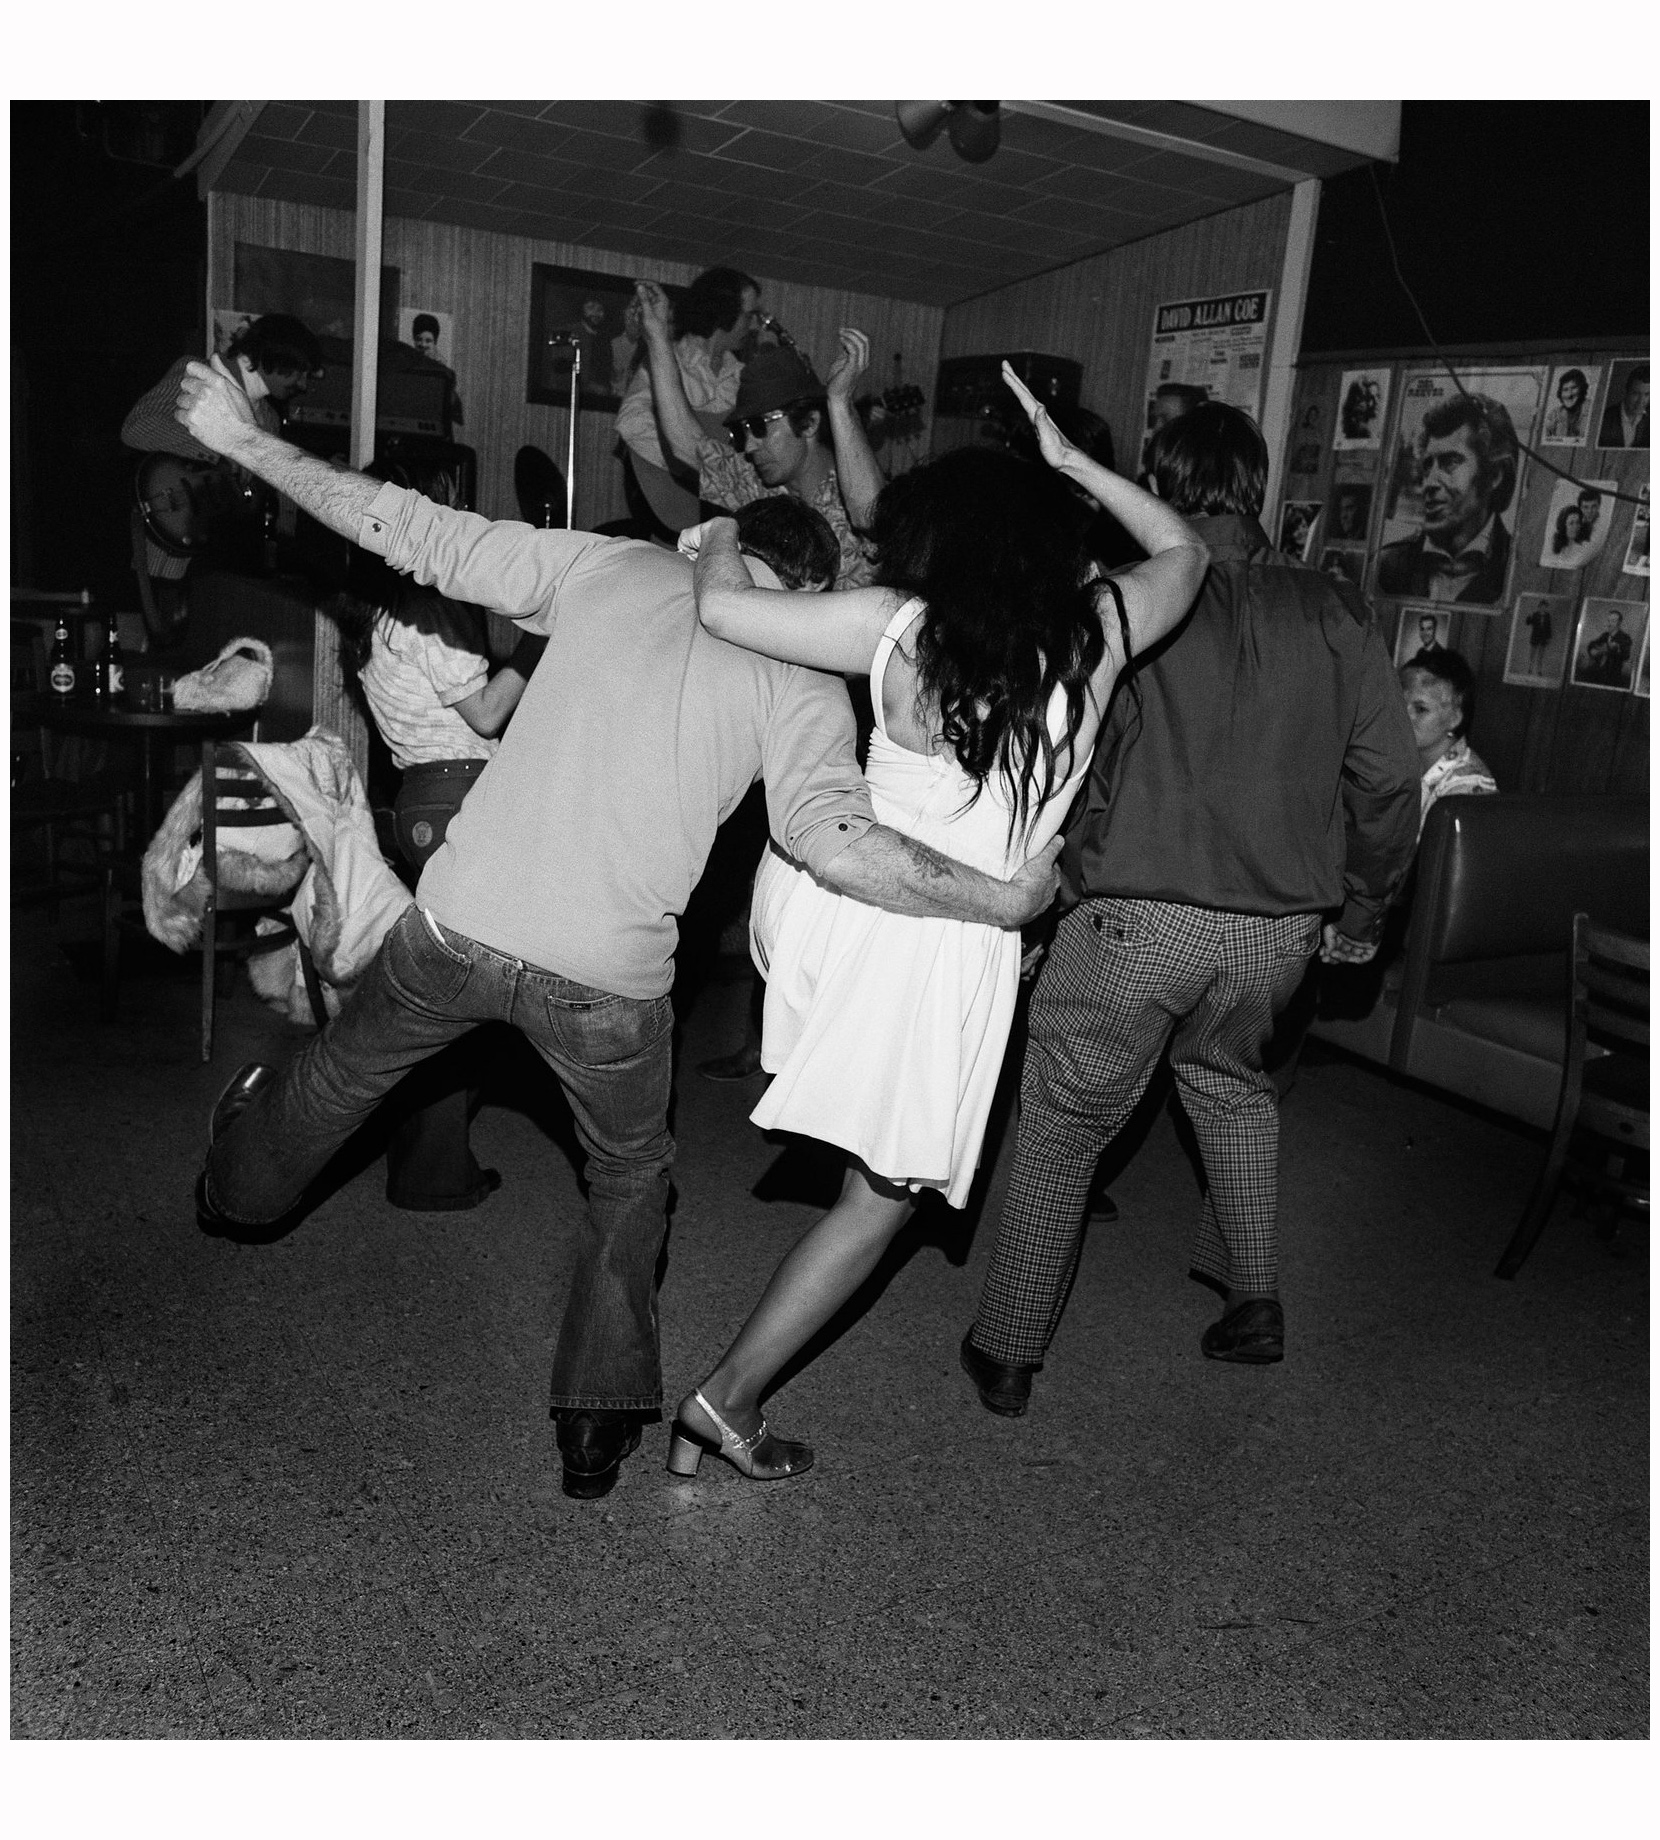 Drunk Dancers, Merchant's Cafe, Nashville, TN, 1974